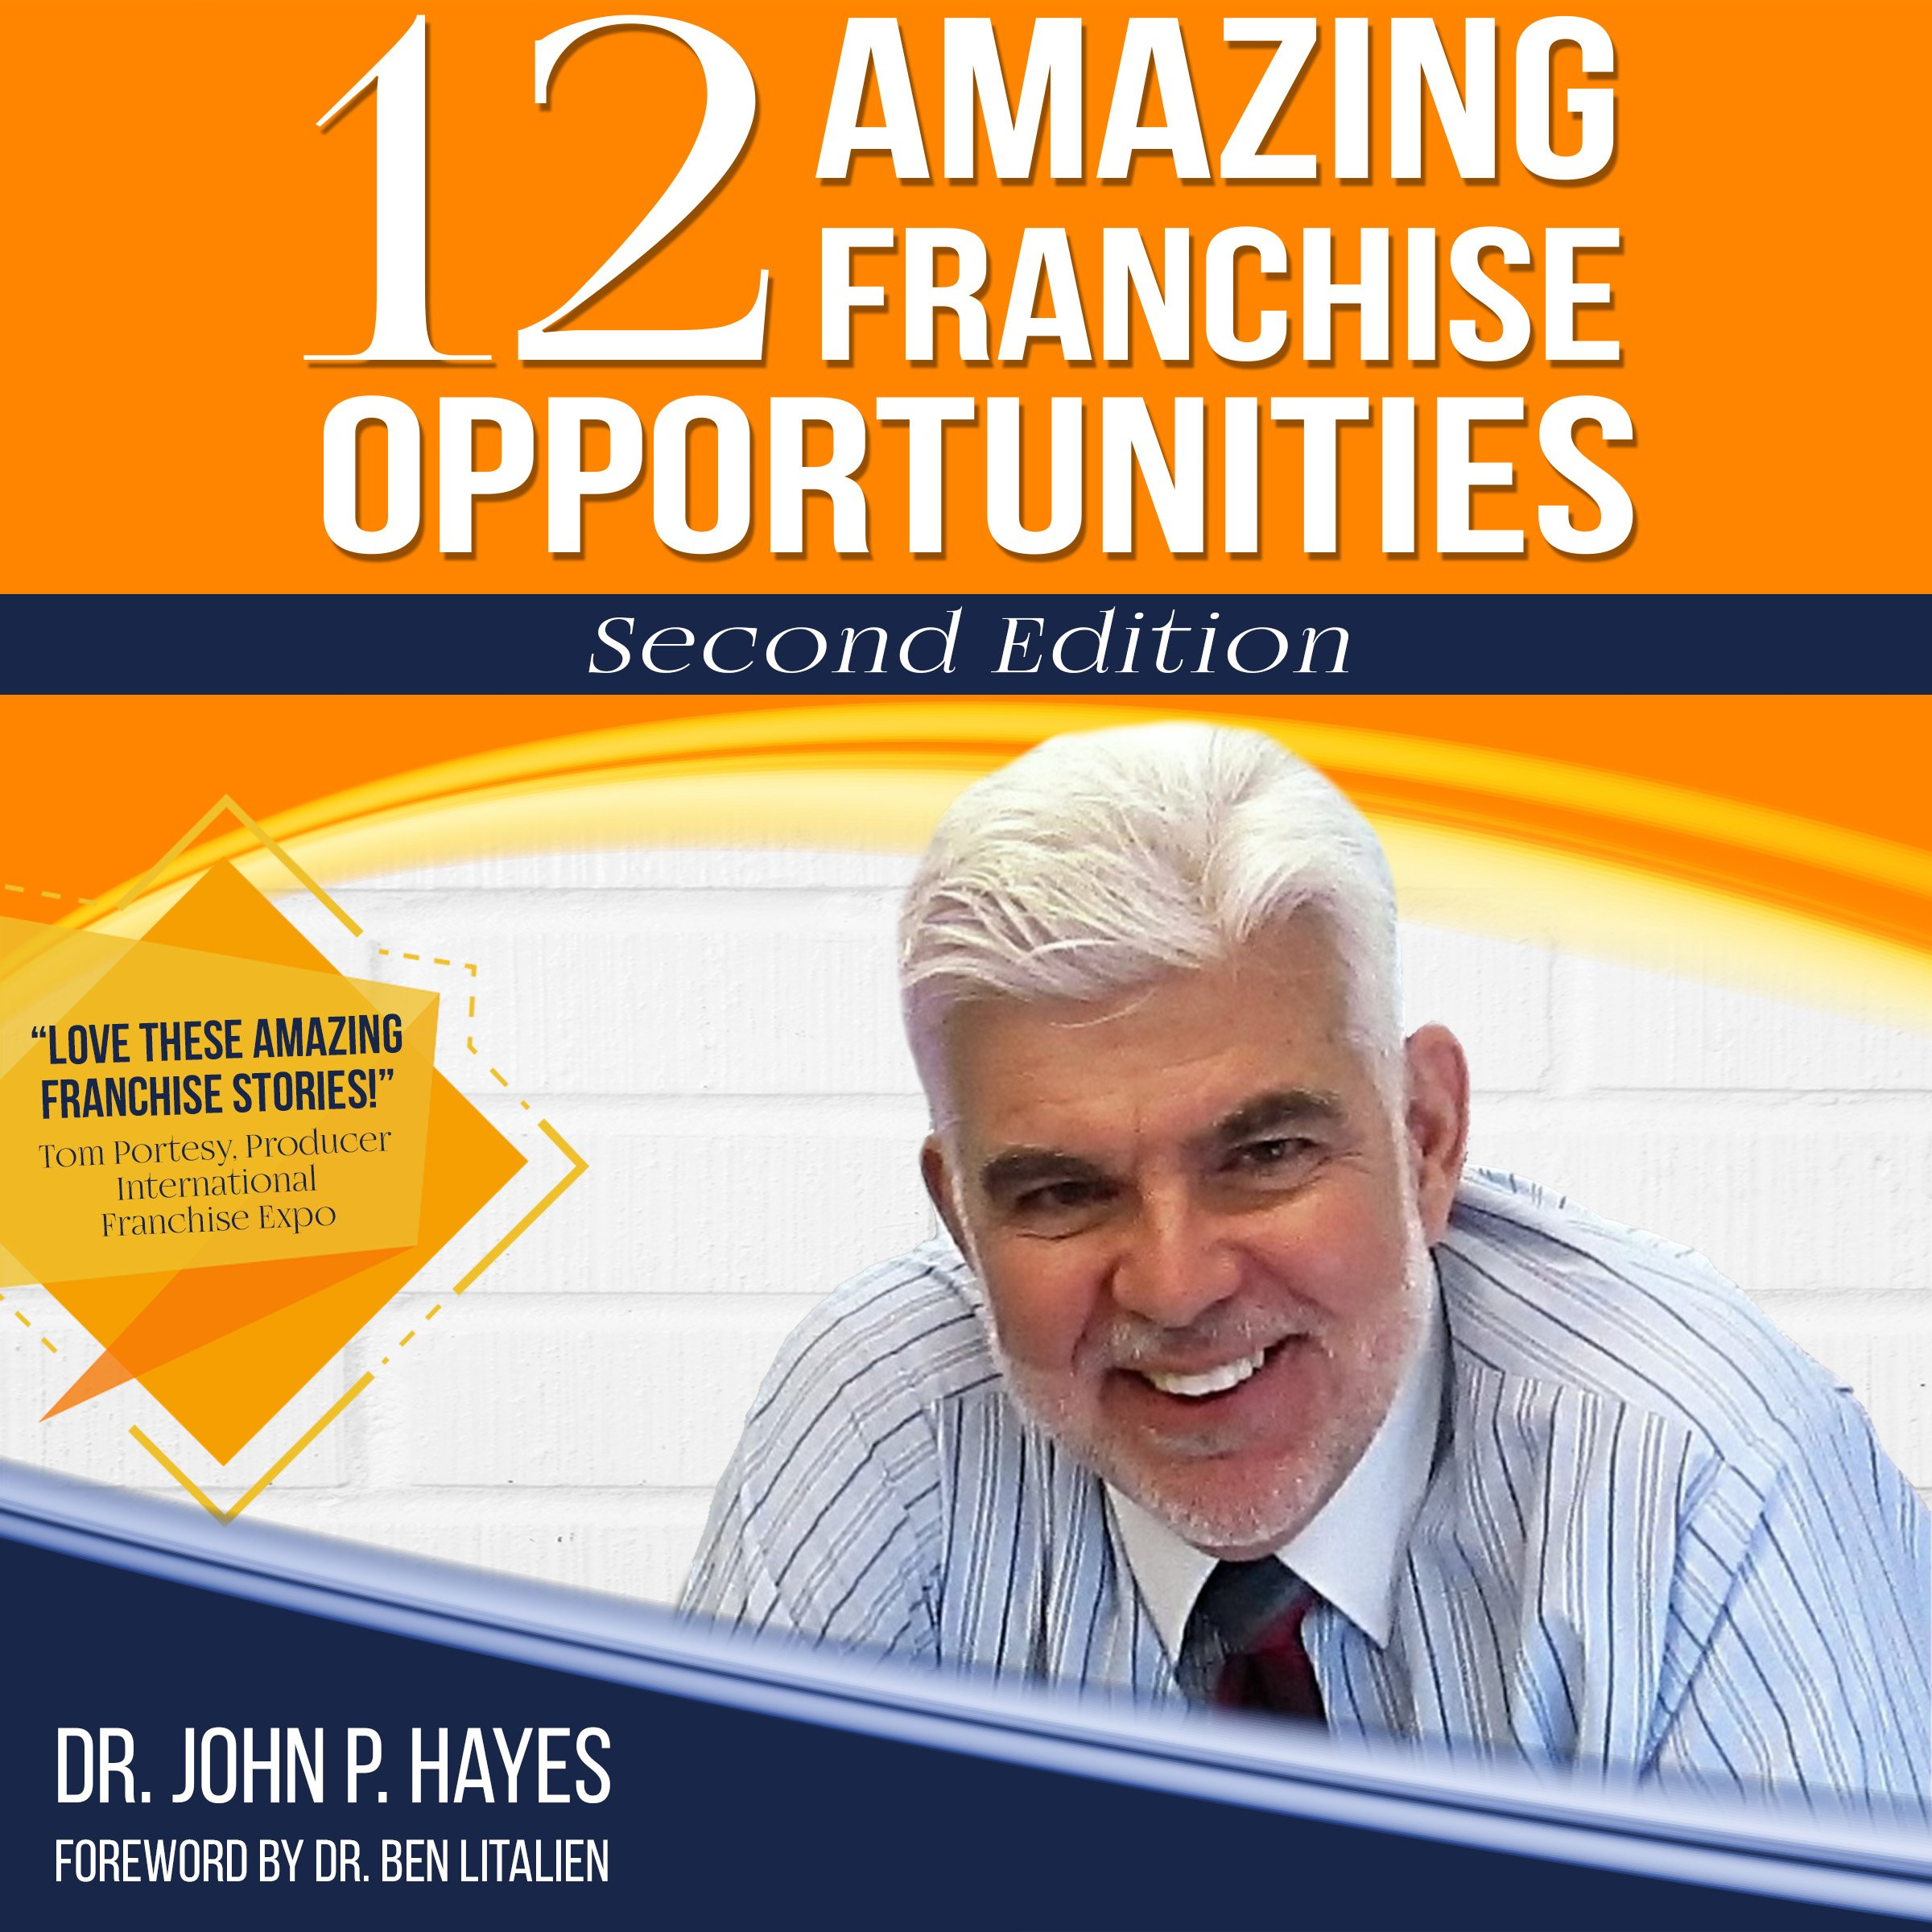 12 Amazing Franchise Opportunities: Second Edition